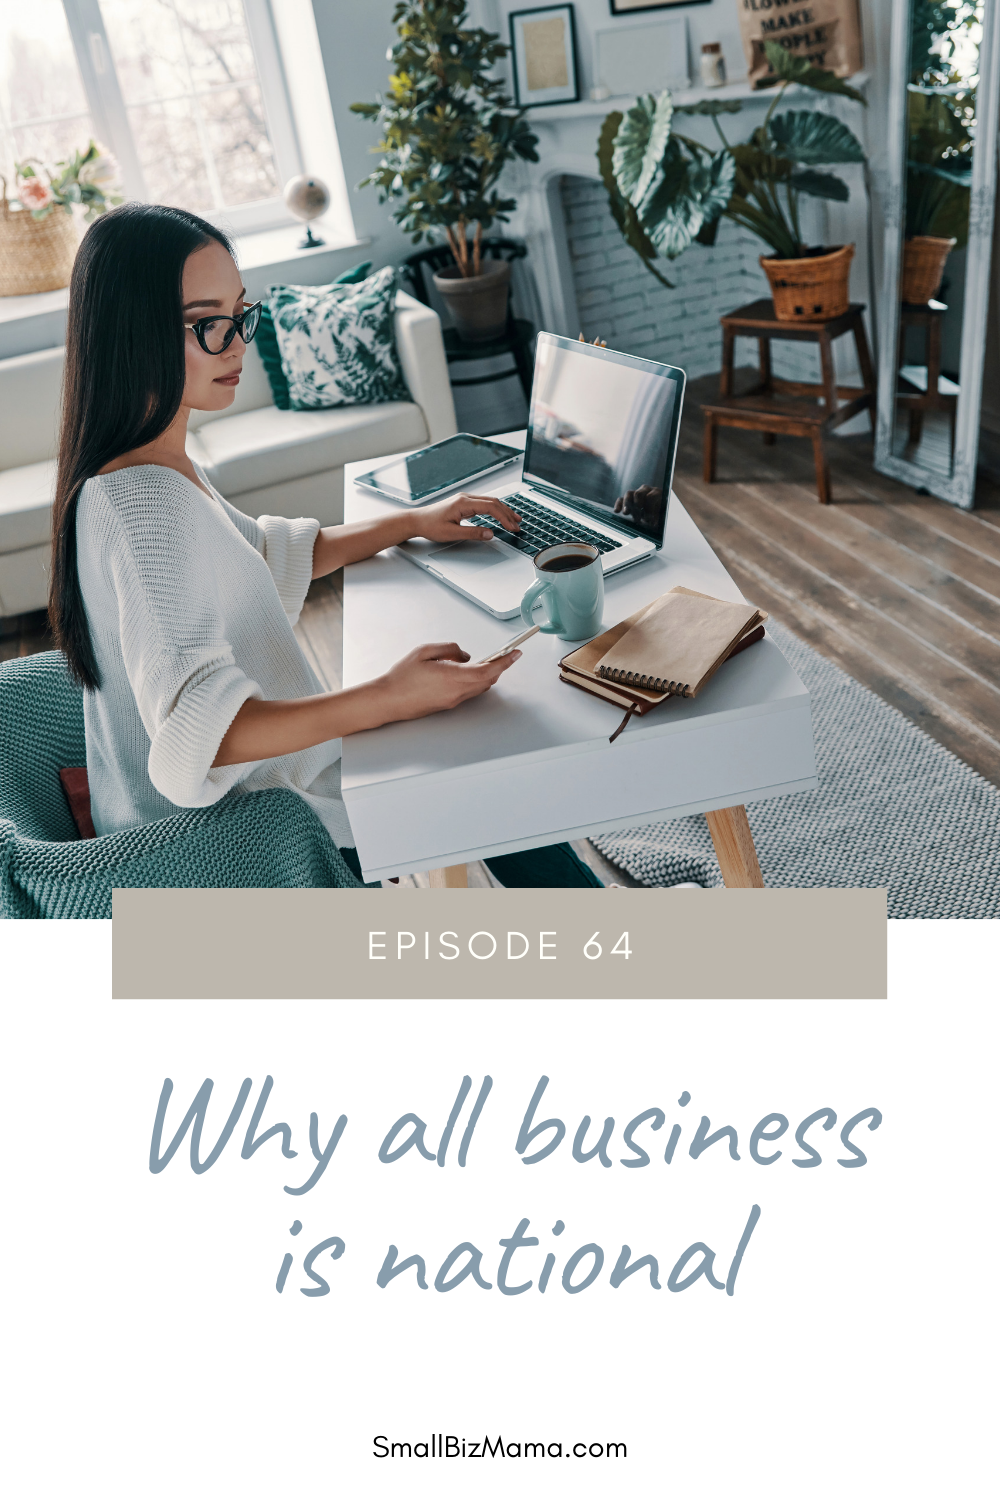 Episode 64 Why all business is national